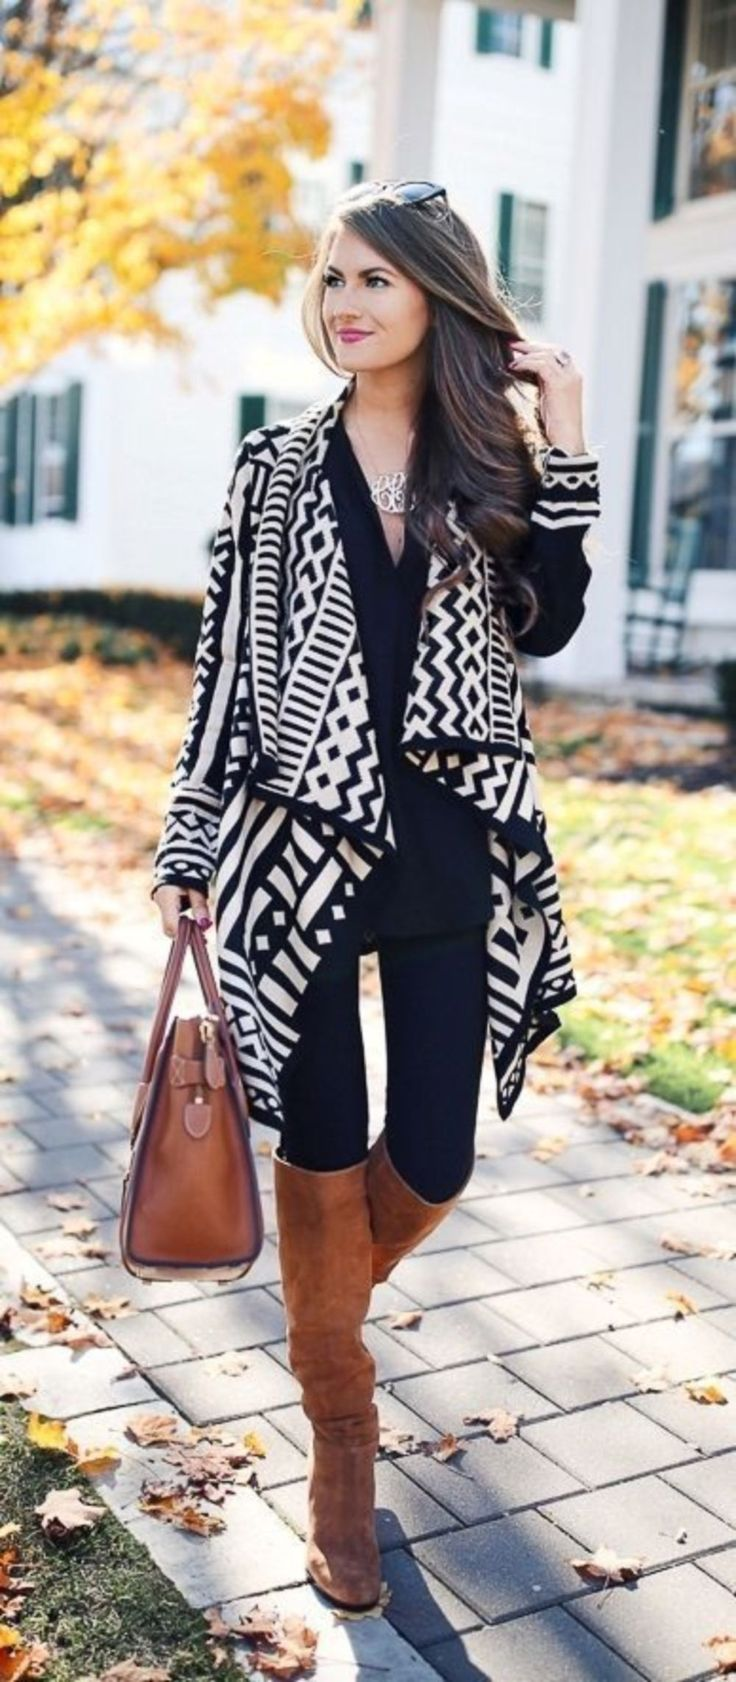 best 25+ amazing outfits ideas on pinterest | clothing color